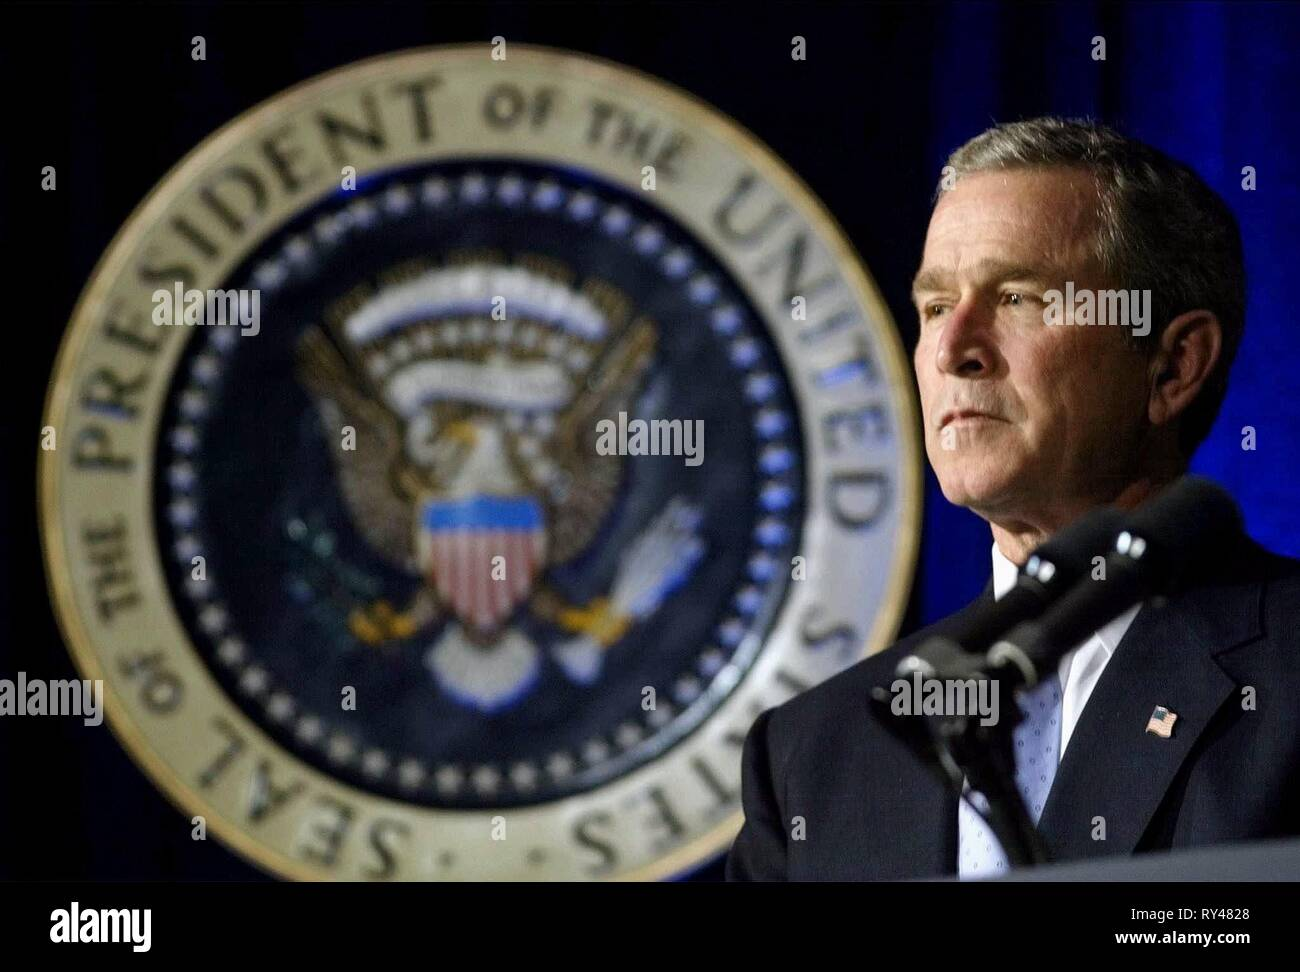 GEORGE W. BUSH, NO END IN SIGHT, 2007 - Stock Image